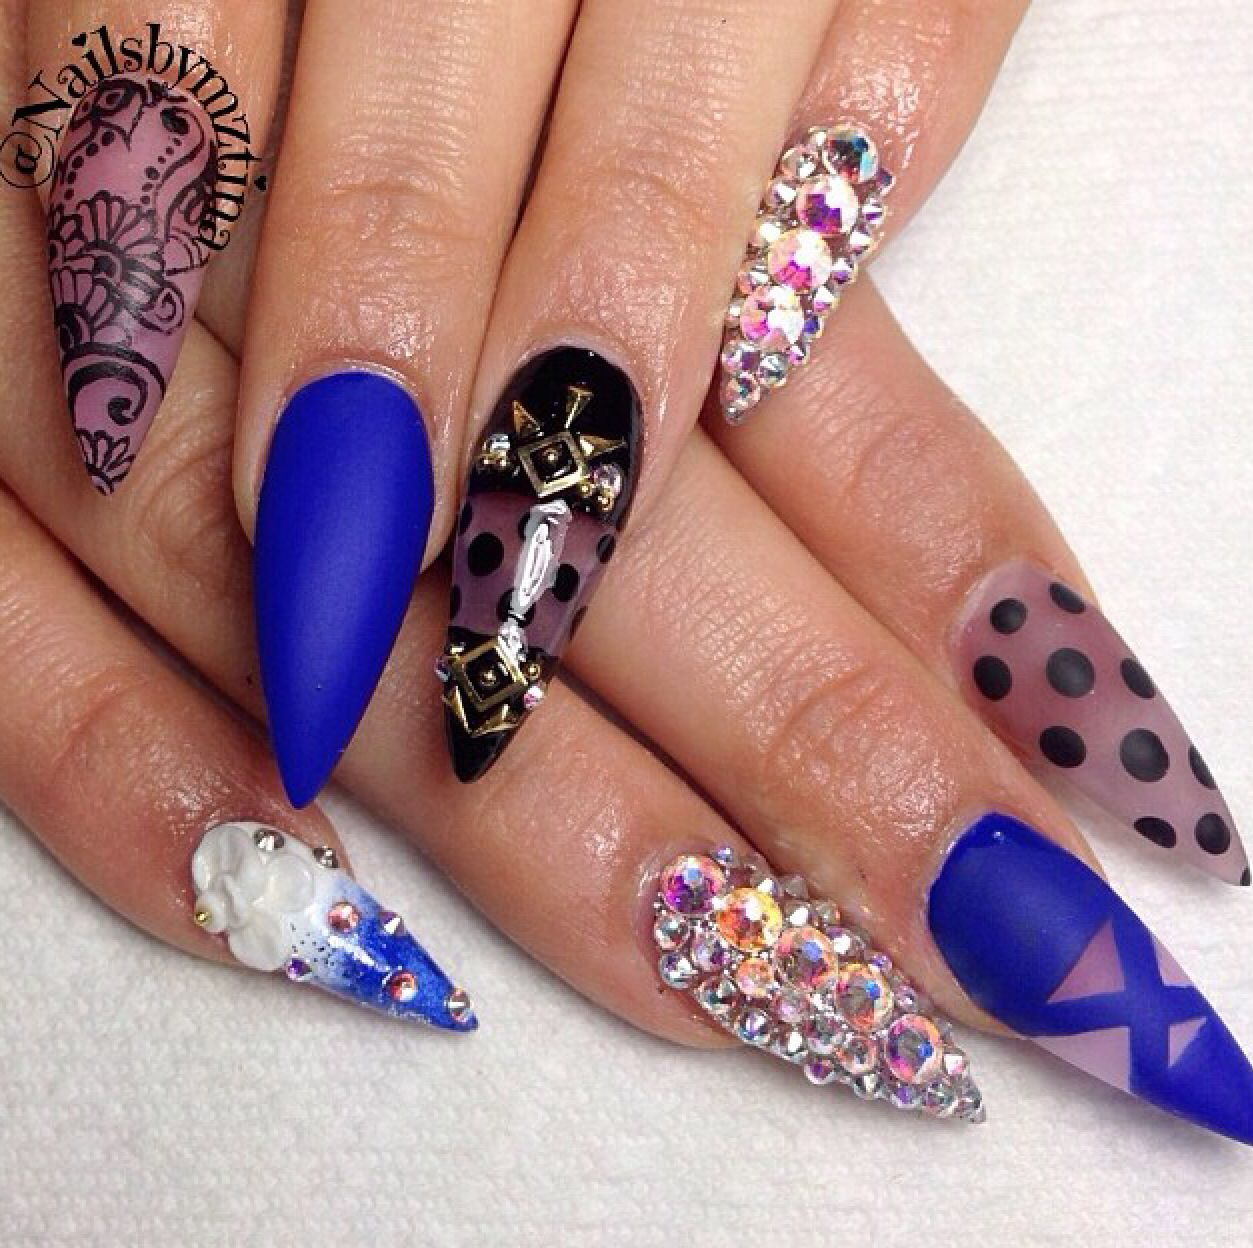 Blue, black, white and clear stilettos with gemstones | Nail designs ...